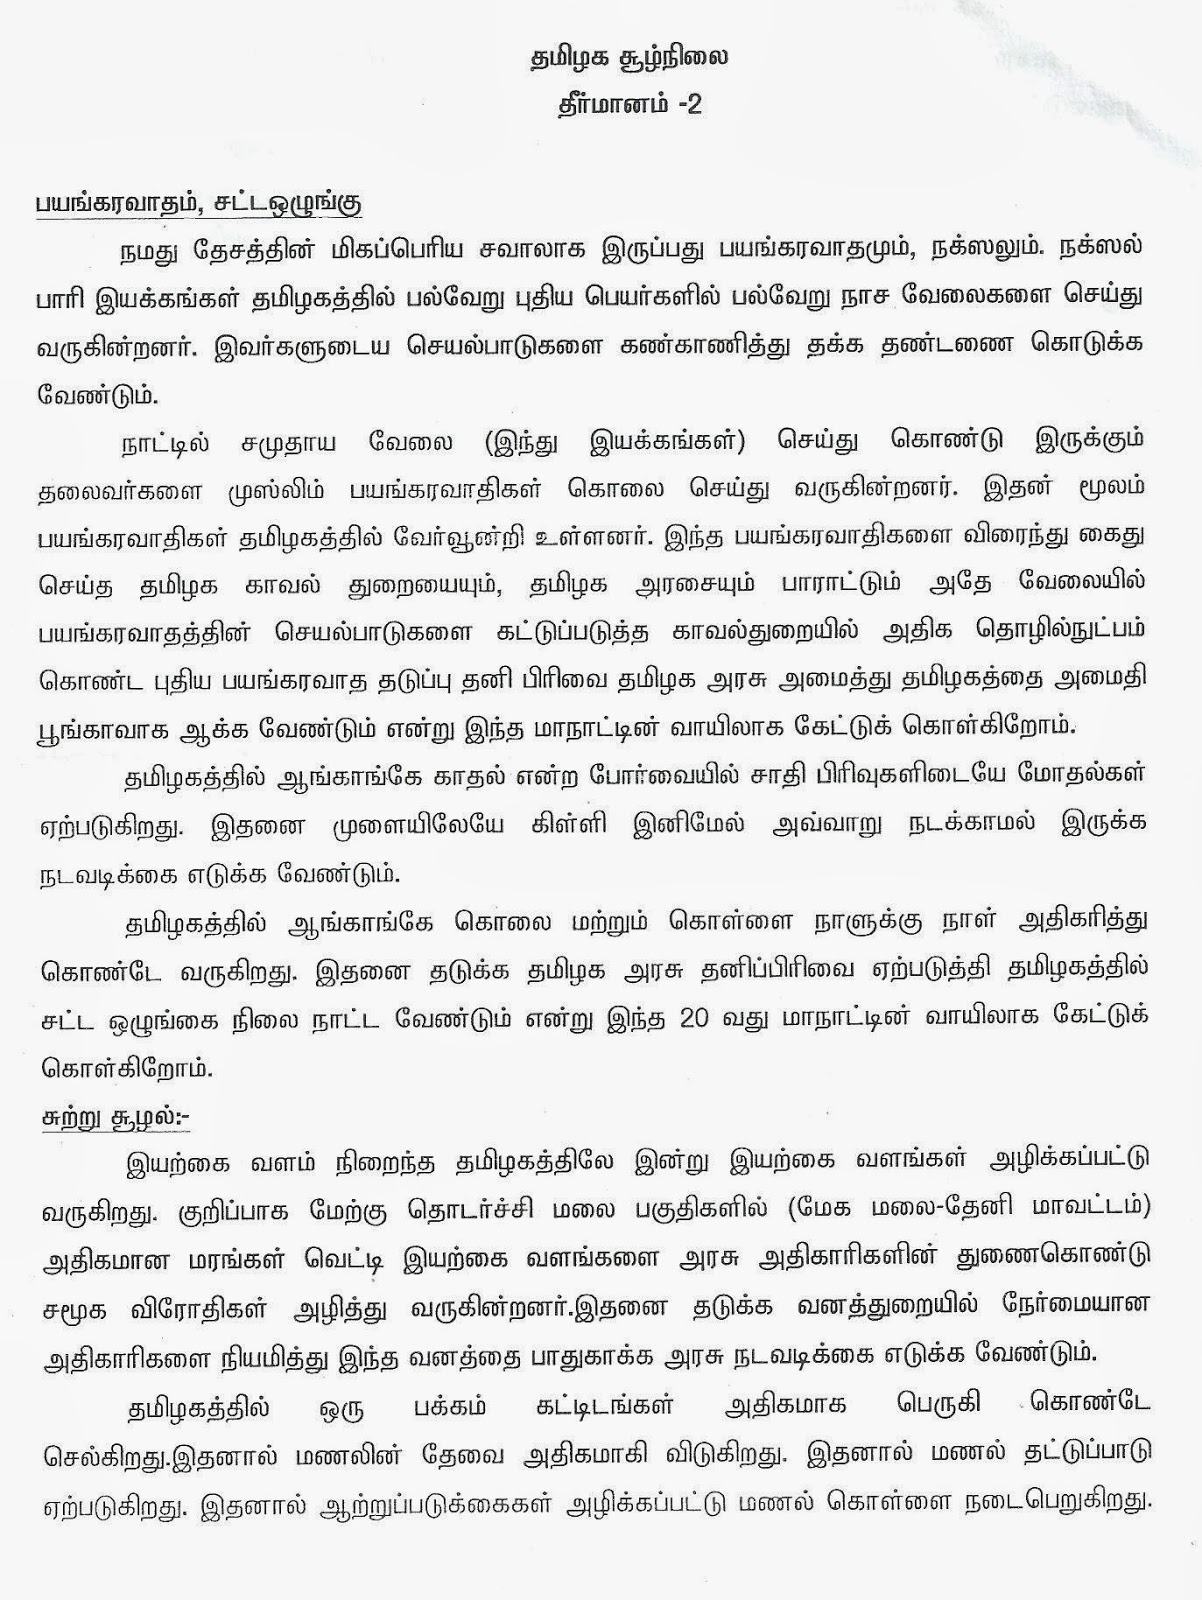 ABVP Tamilnadu calls for a change